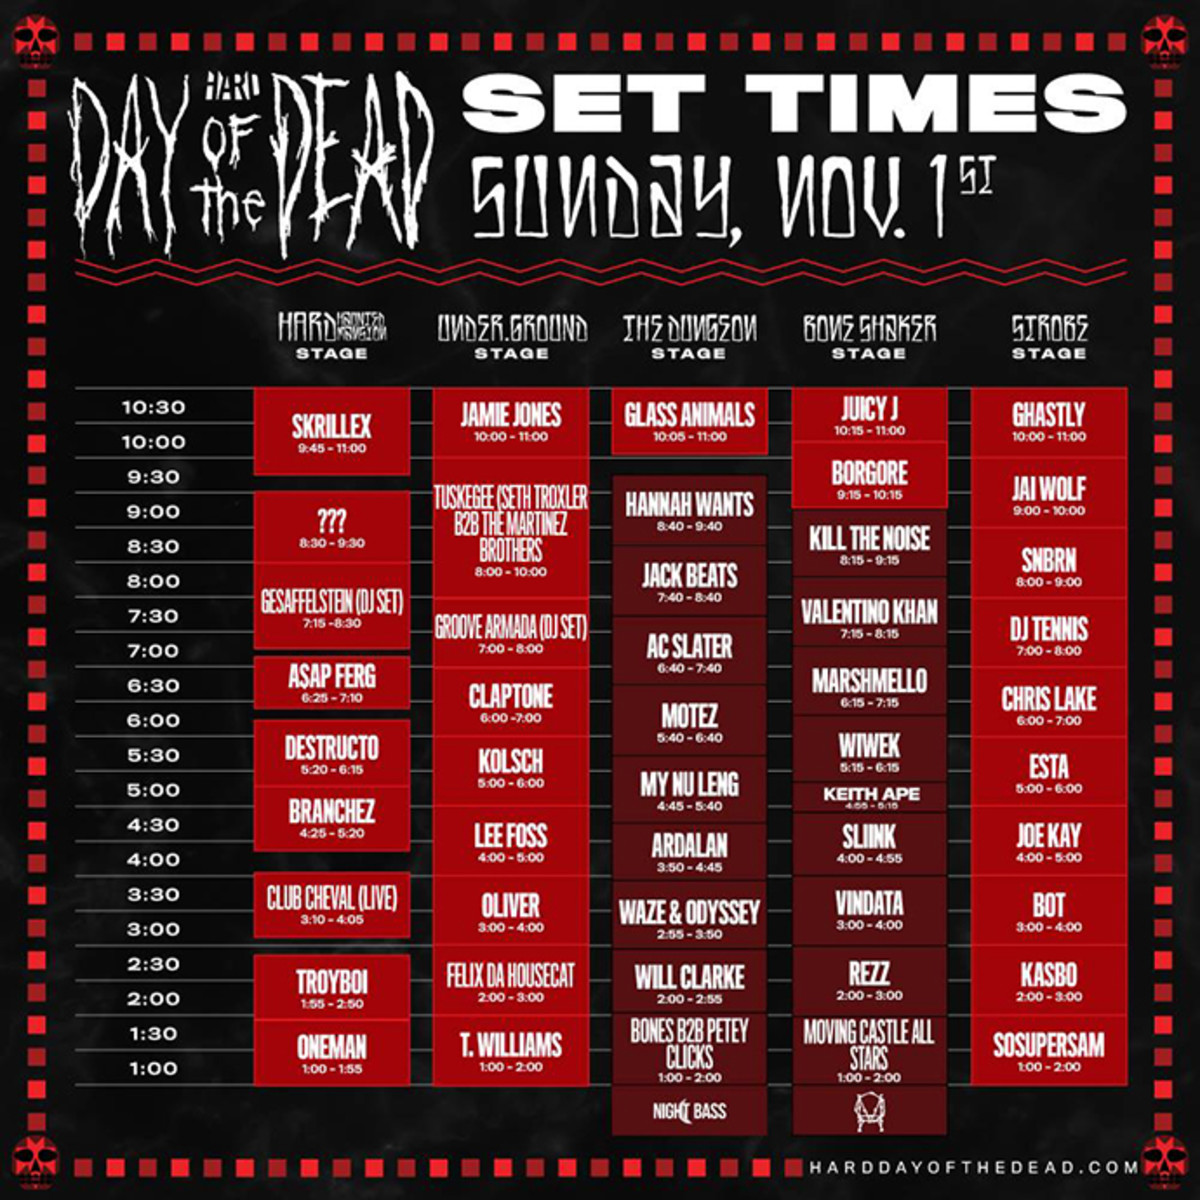 Hard Day of the Dead Set Times Day 2